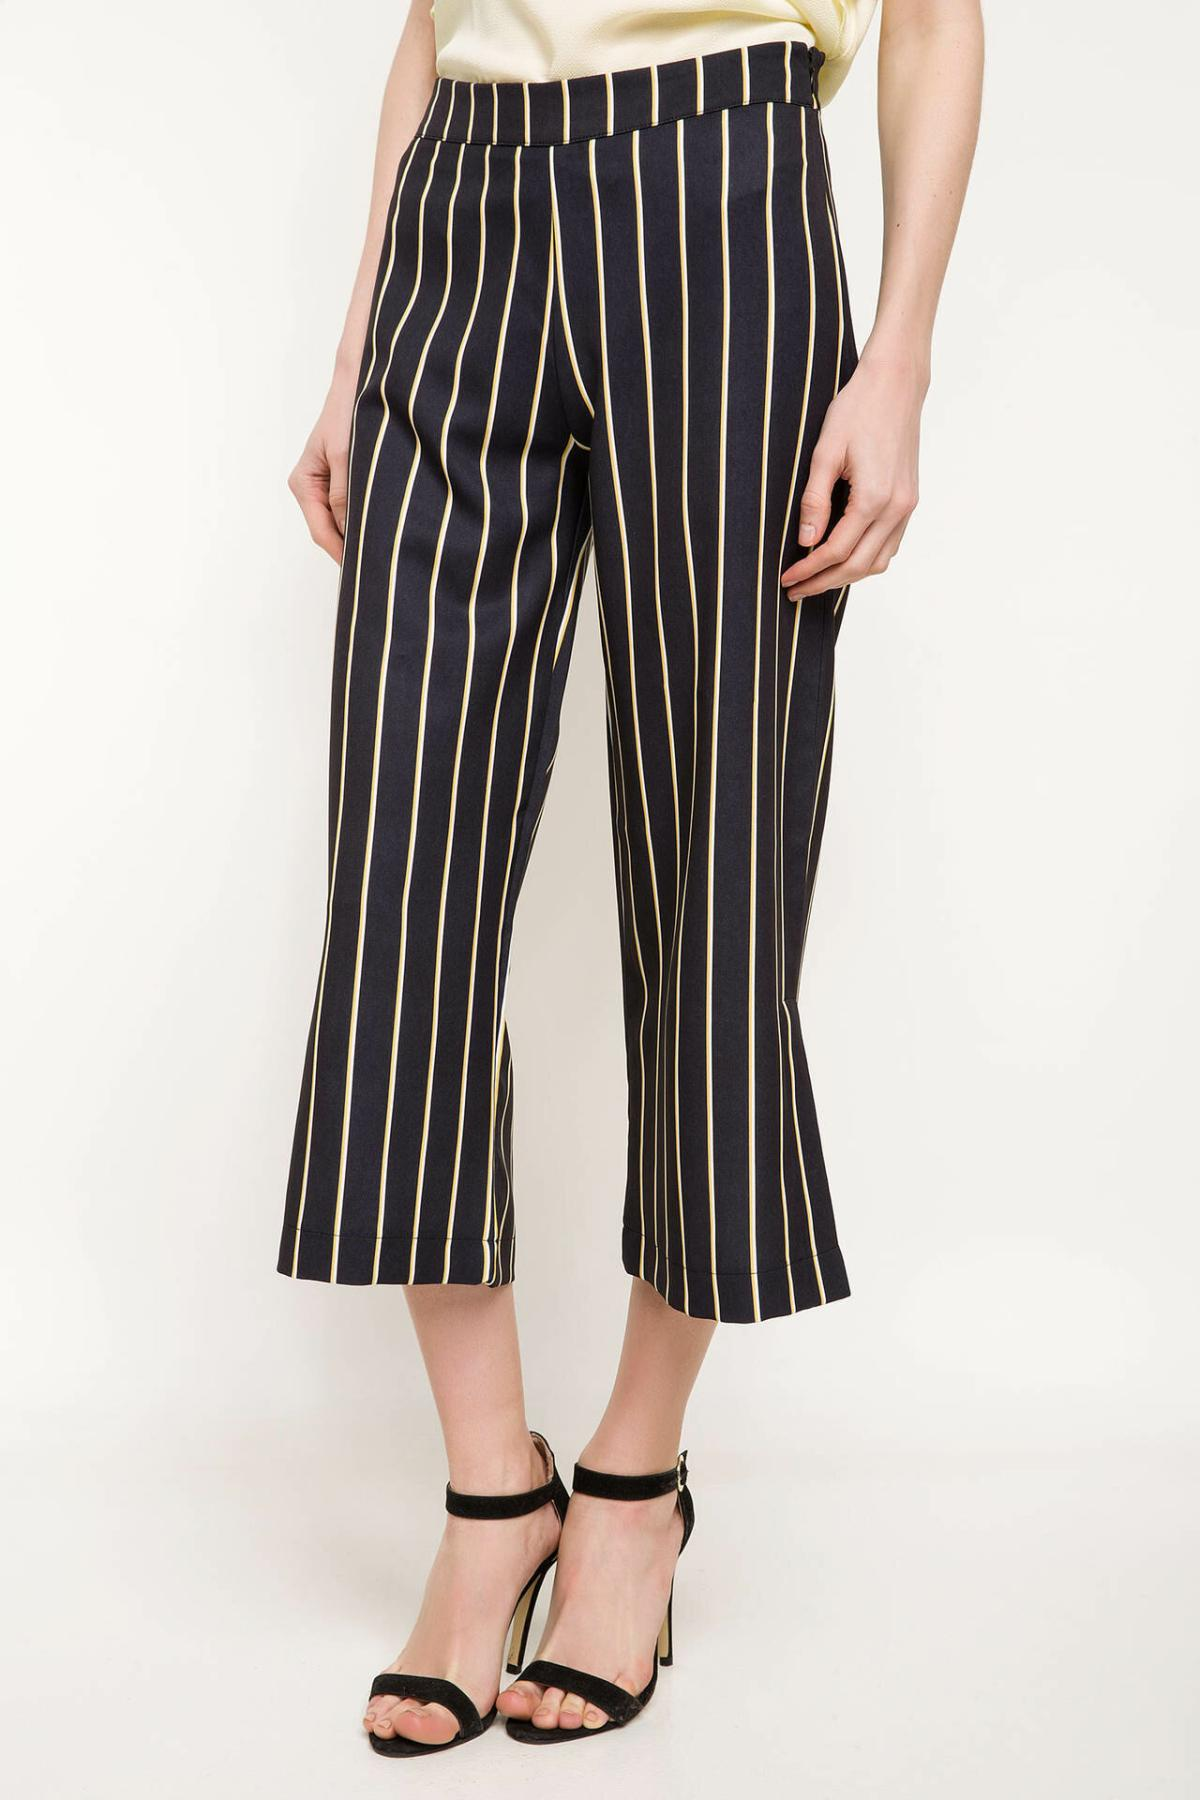 DeFacto Spring White Black Striped Long Pants Women Wide-leg Ninth Pants Female Loose Elastic Bottoms Trousers-J1122AZ18SP